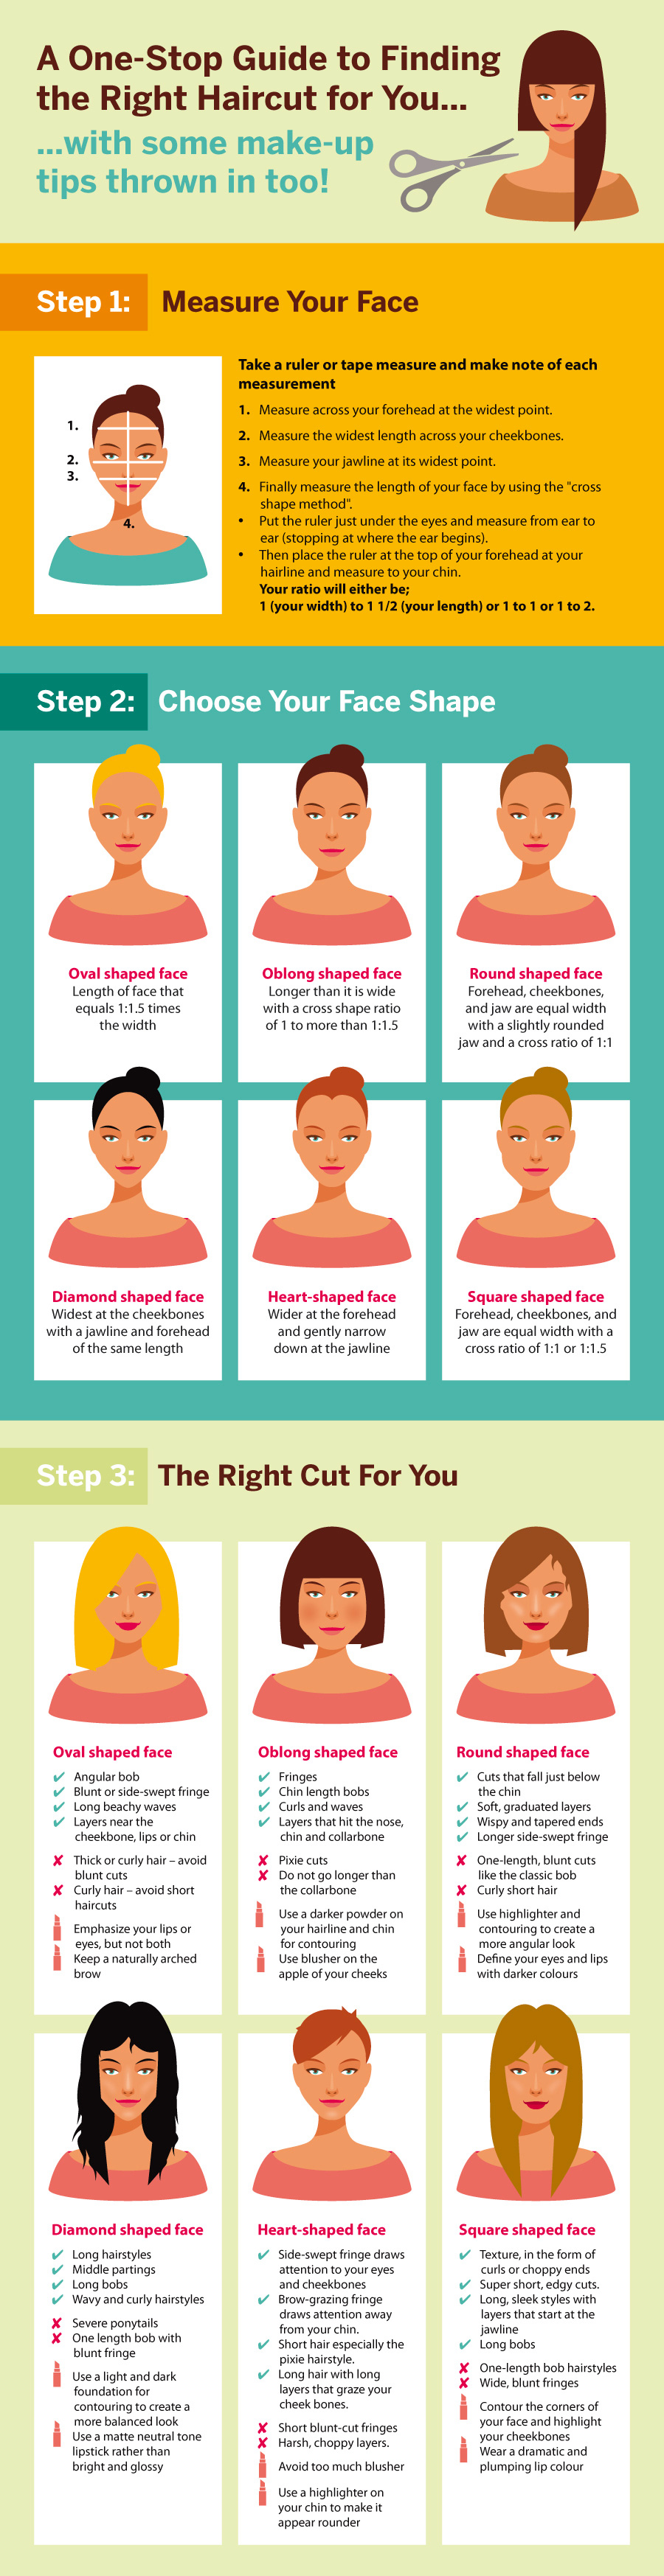 Knowing Your Face Shape Can Be So Helpful When Choosing A Hairstyle